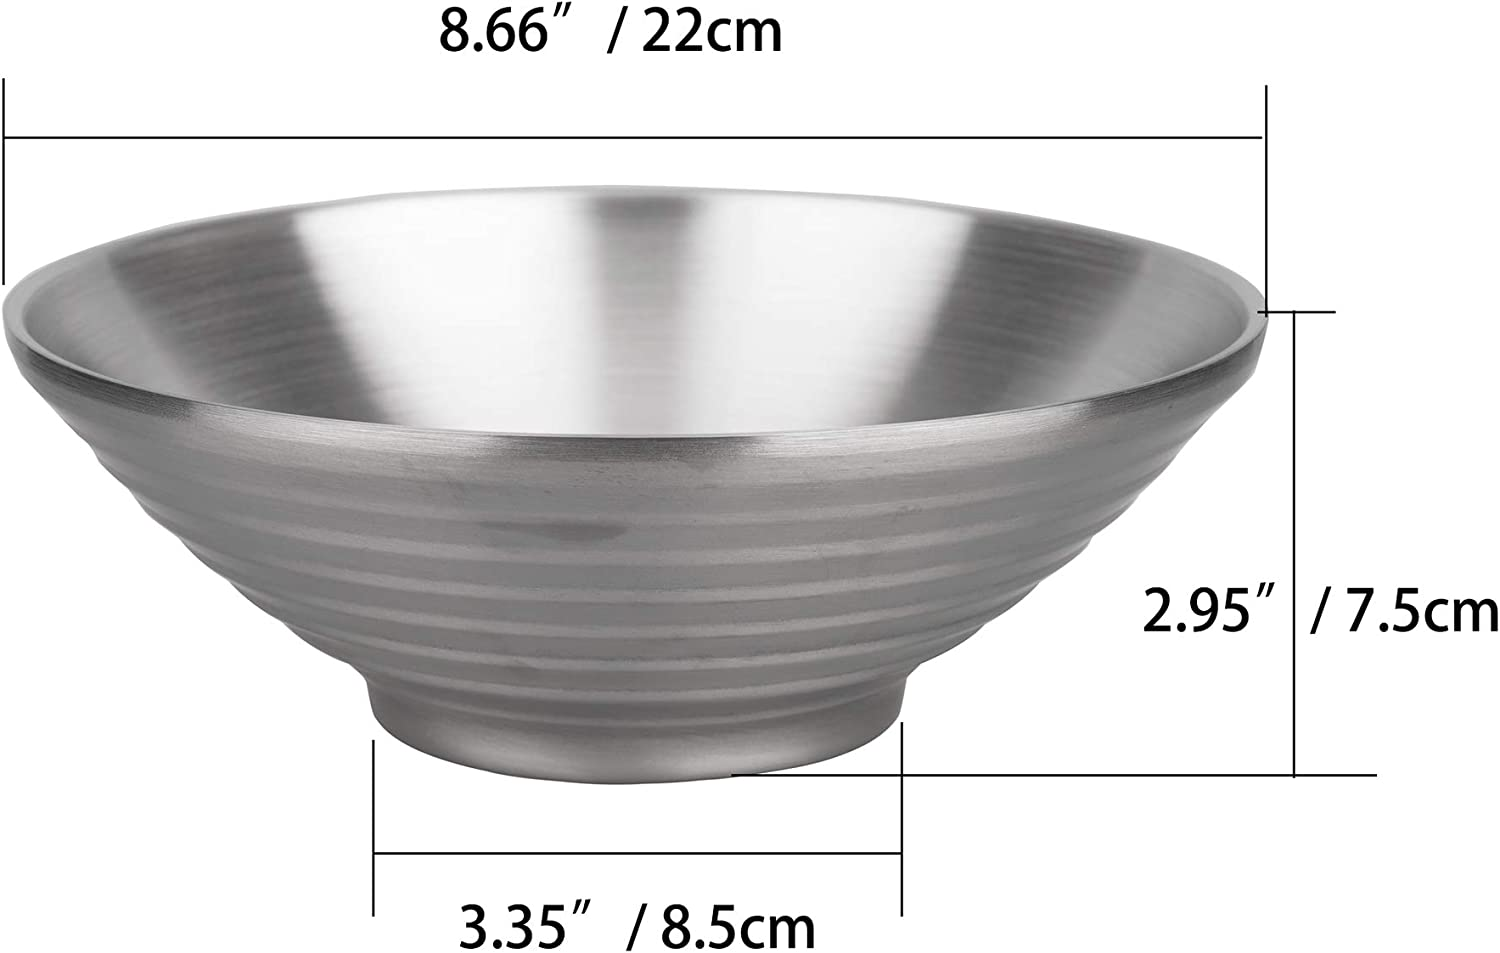 IMEEA 2-Piece Double Layer Ramen Noodle Soup Bowl SUS304 Stainless Steel Serving Bowl for Udon Soba Pho Pasta Salad Cereal 22cm